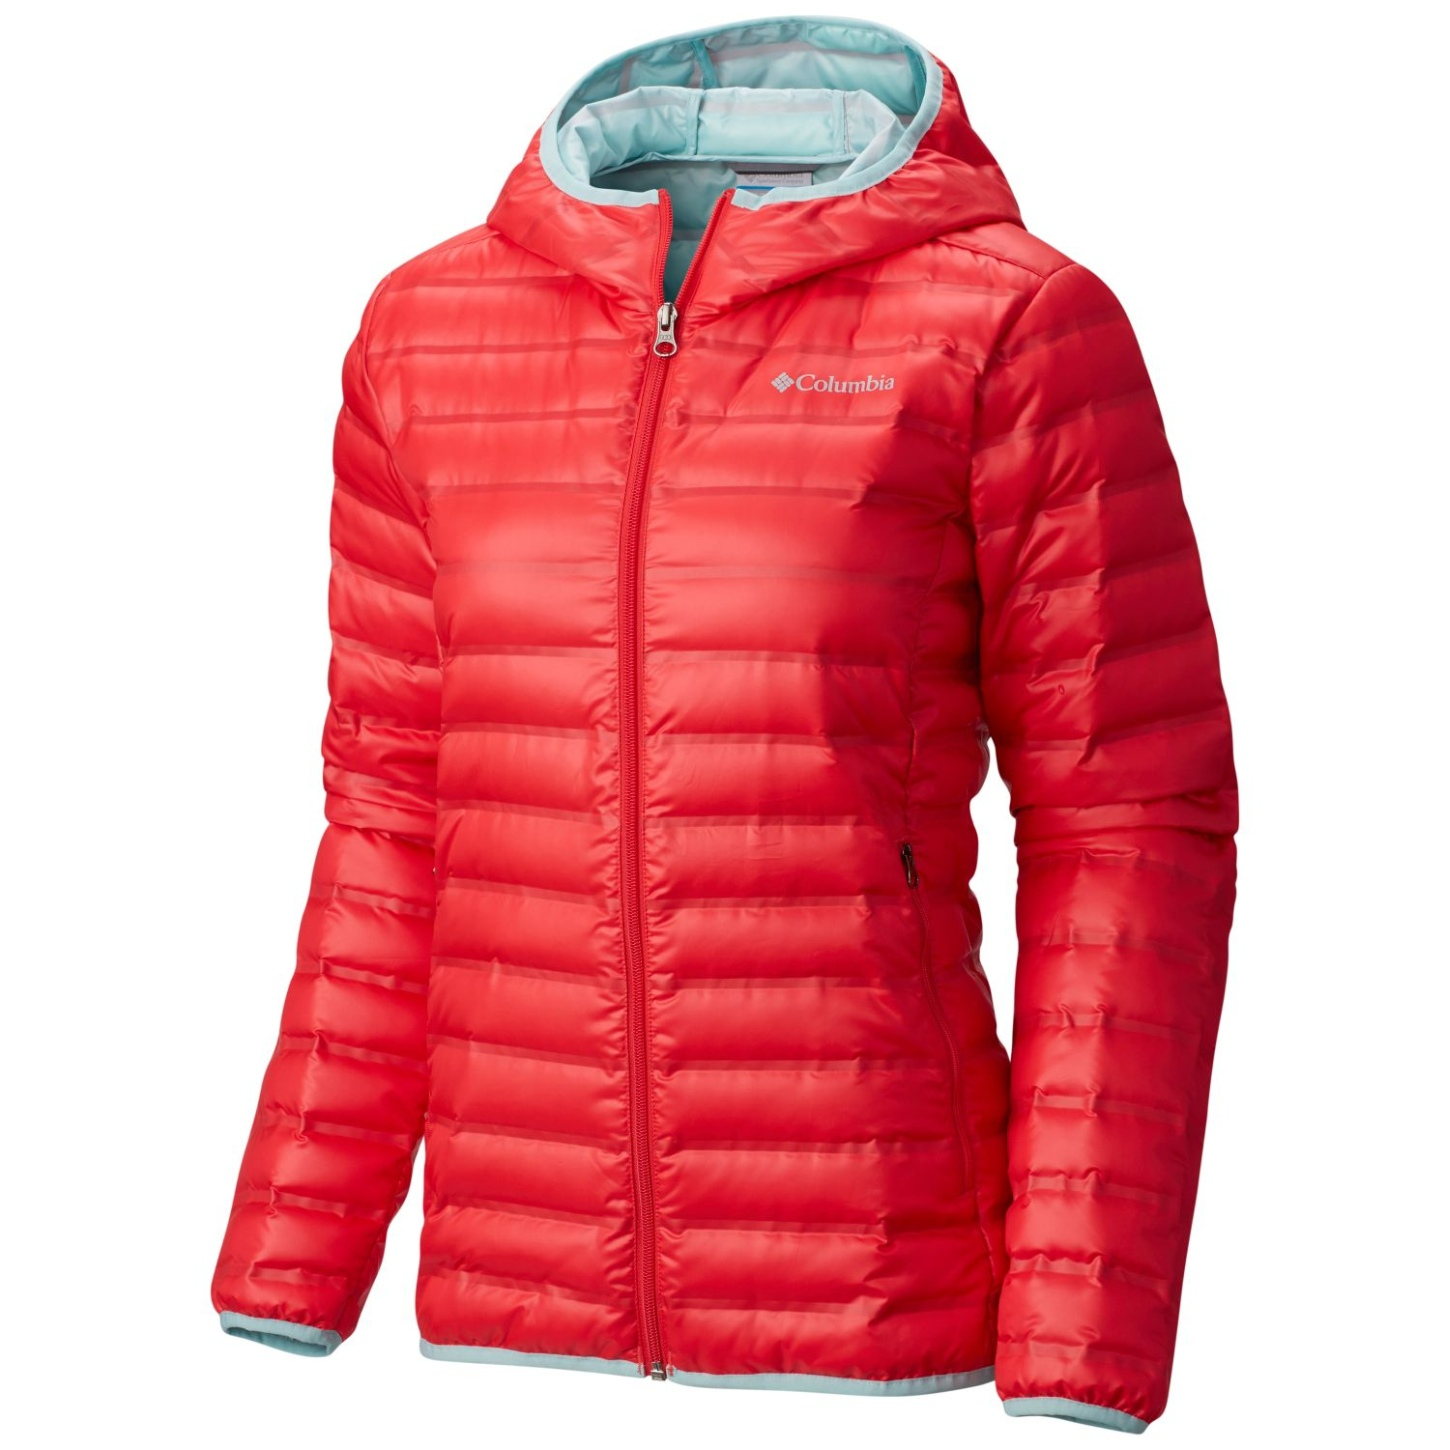 Columbia Women's Flash Forward Hooded Down Jacket Red Camellia, Spray-30